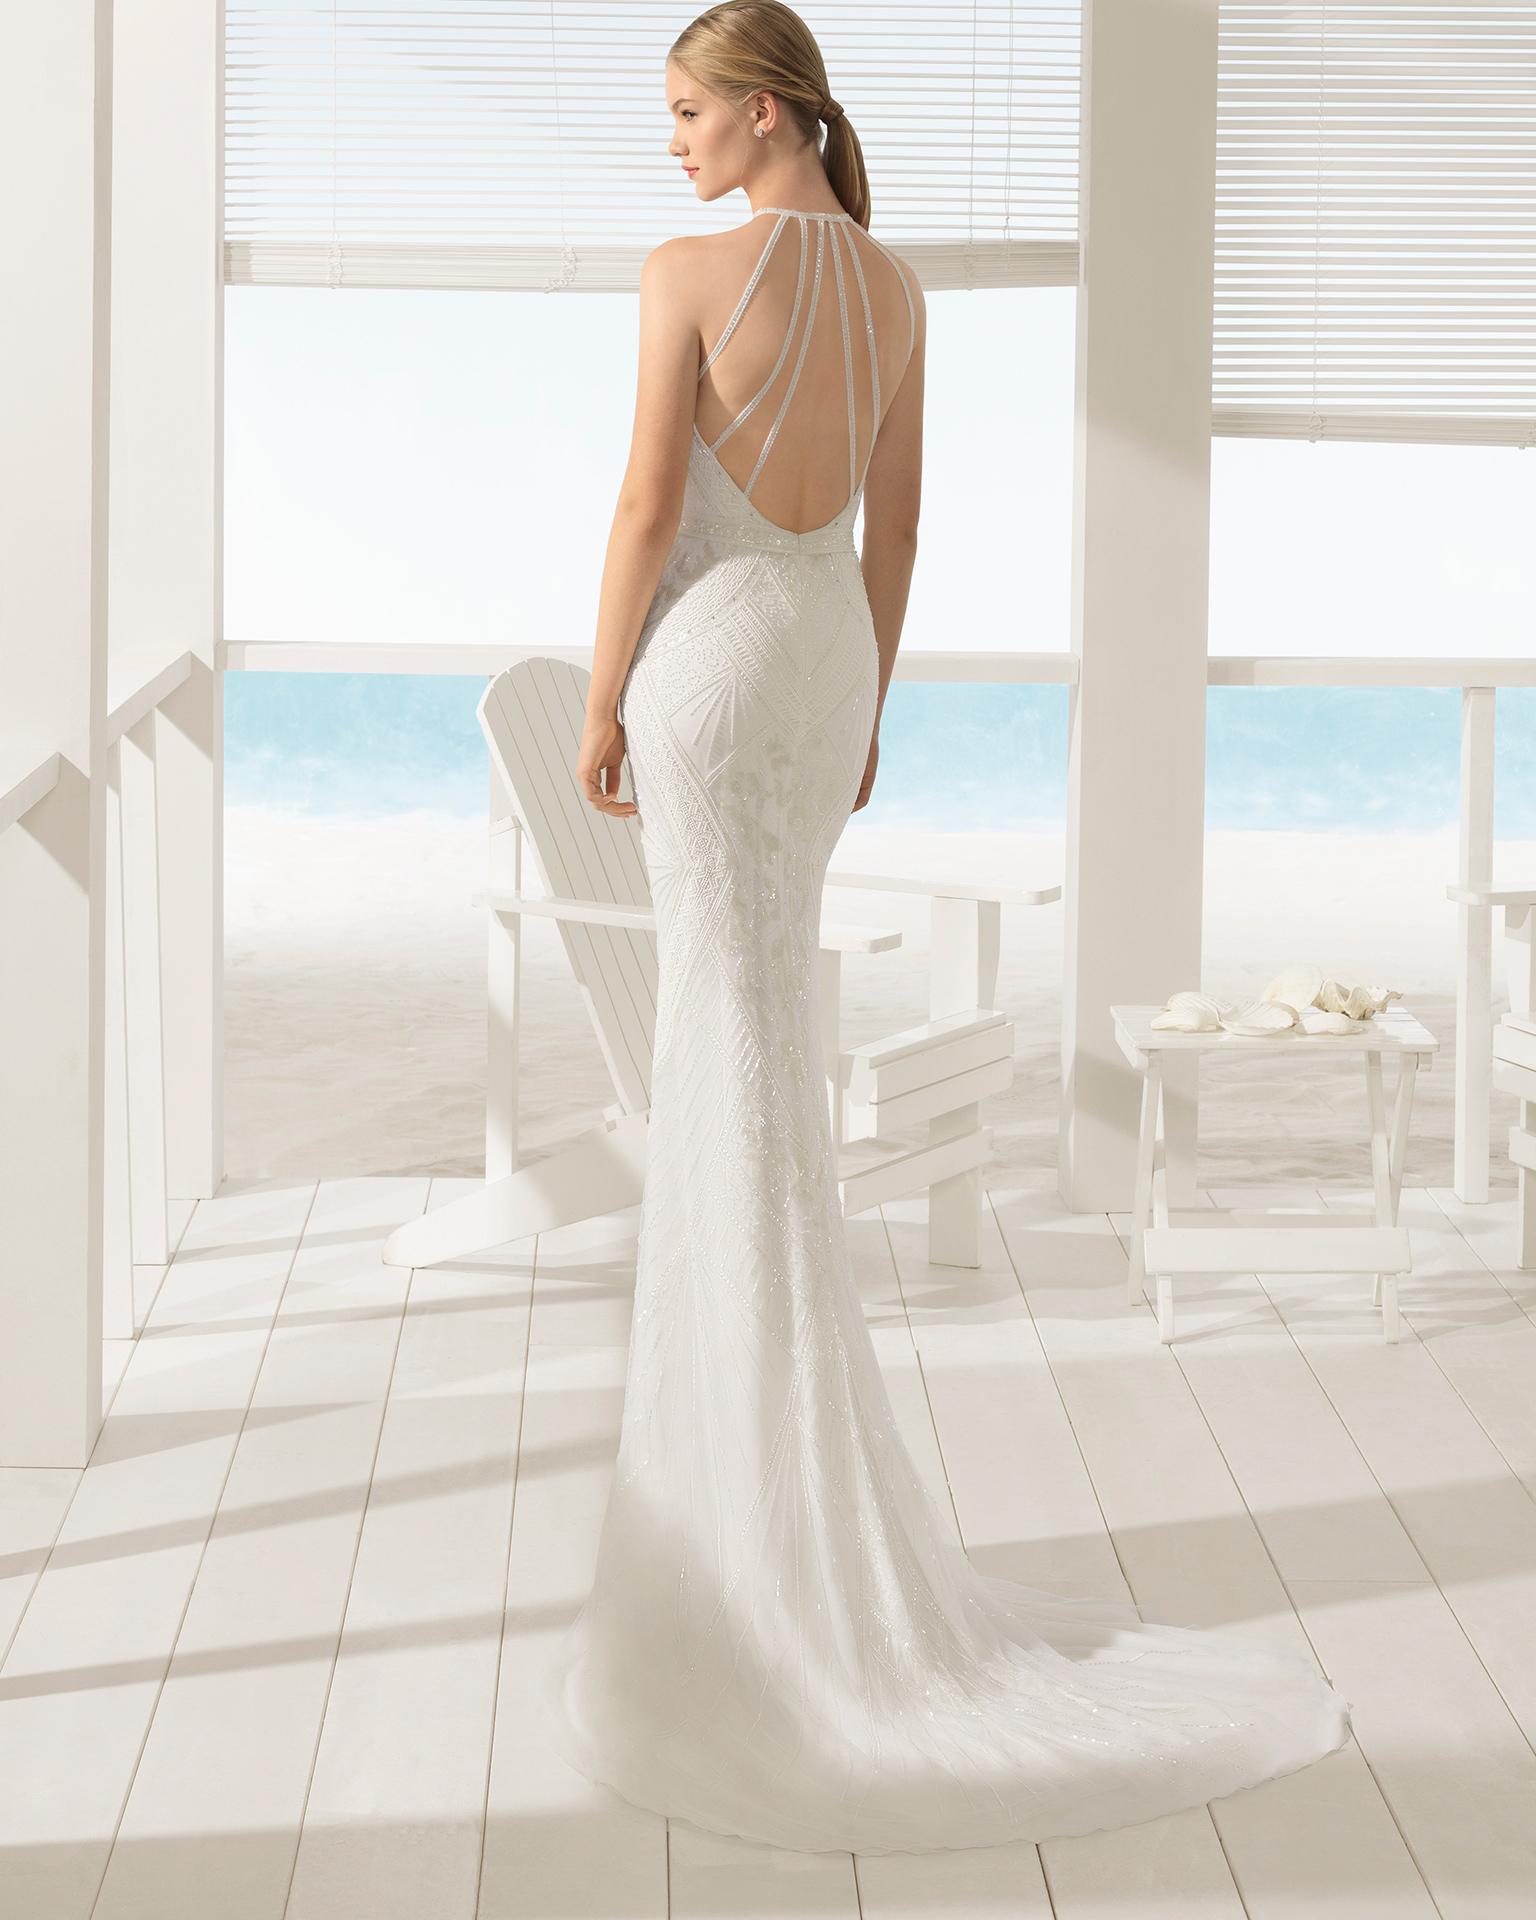 Boho-style beaded guipure lace wedding dress with halter neckline and open back.